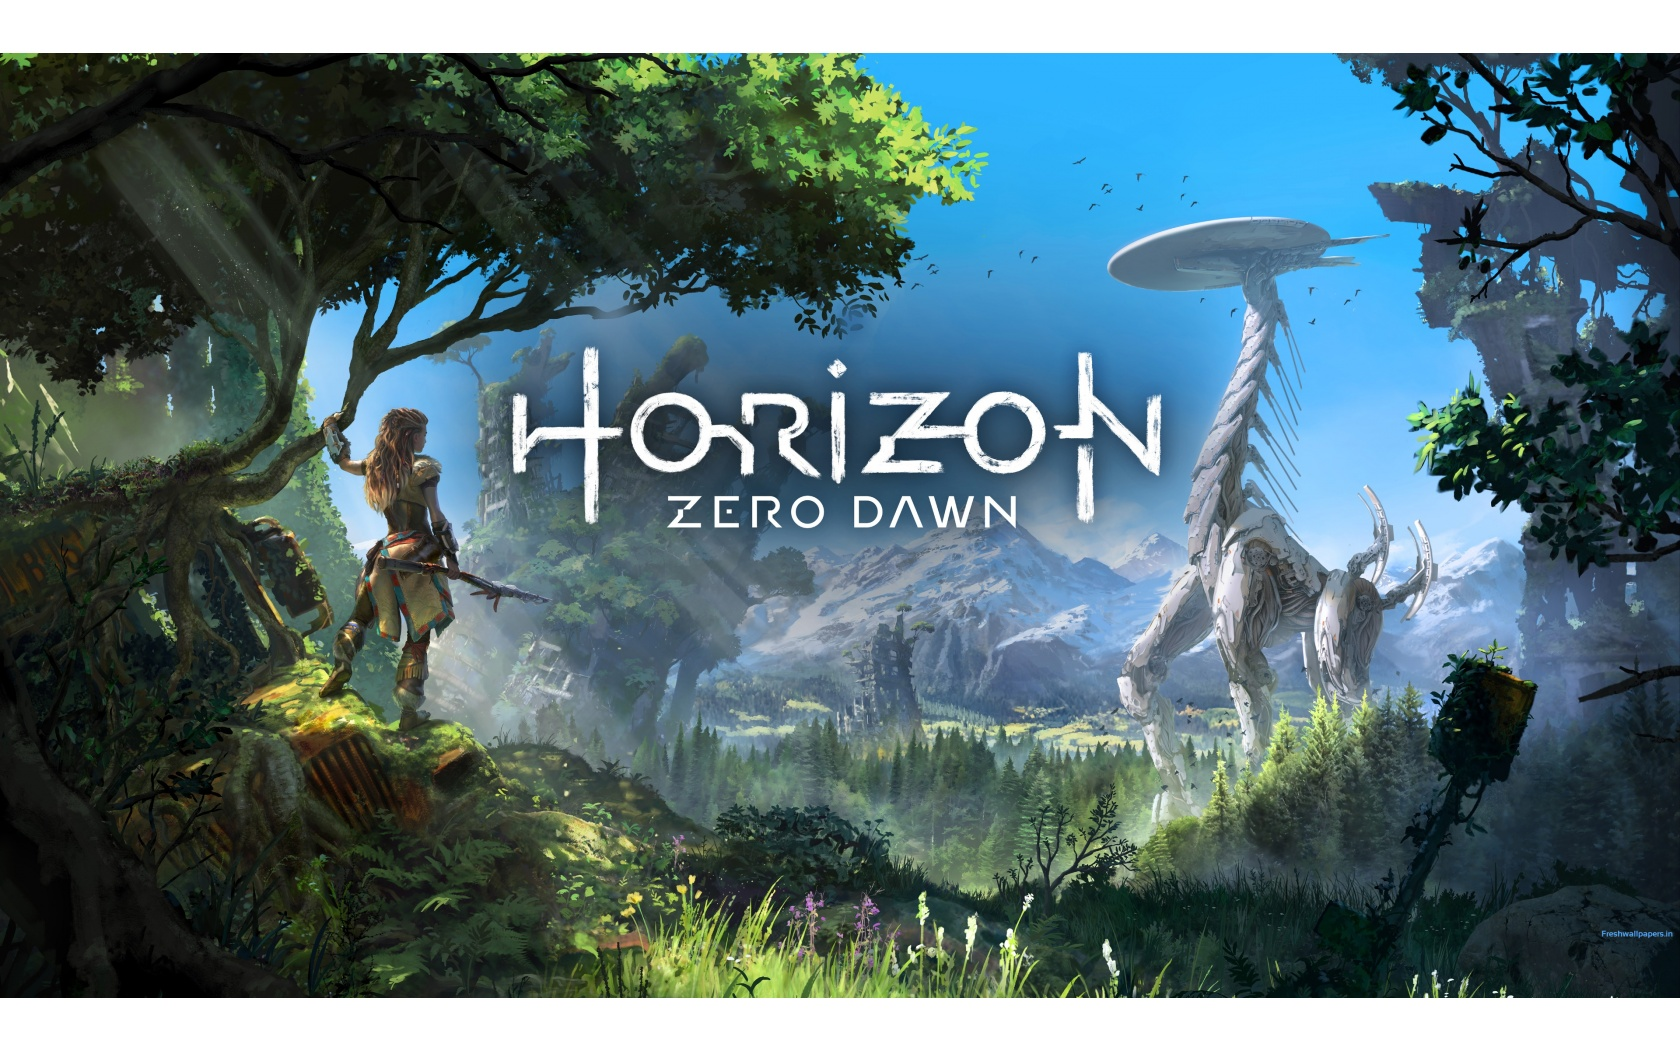 horizon_zero_dawn_game-1680x1050.jpg